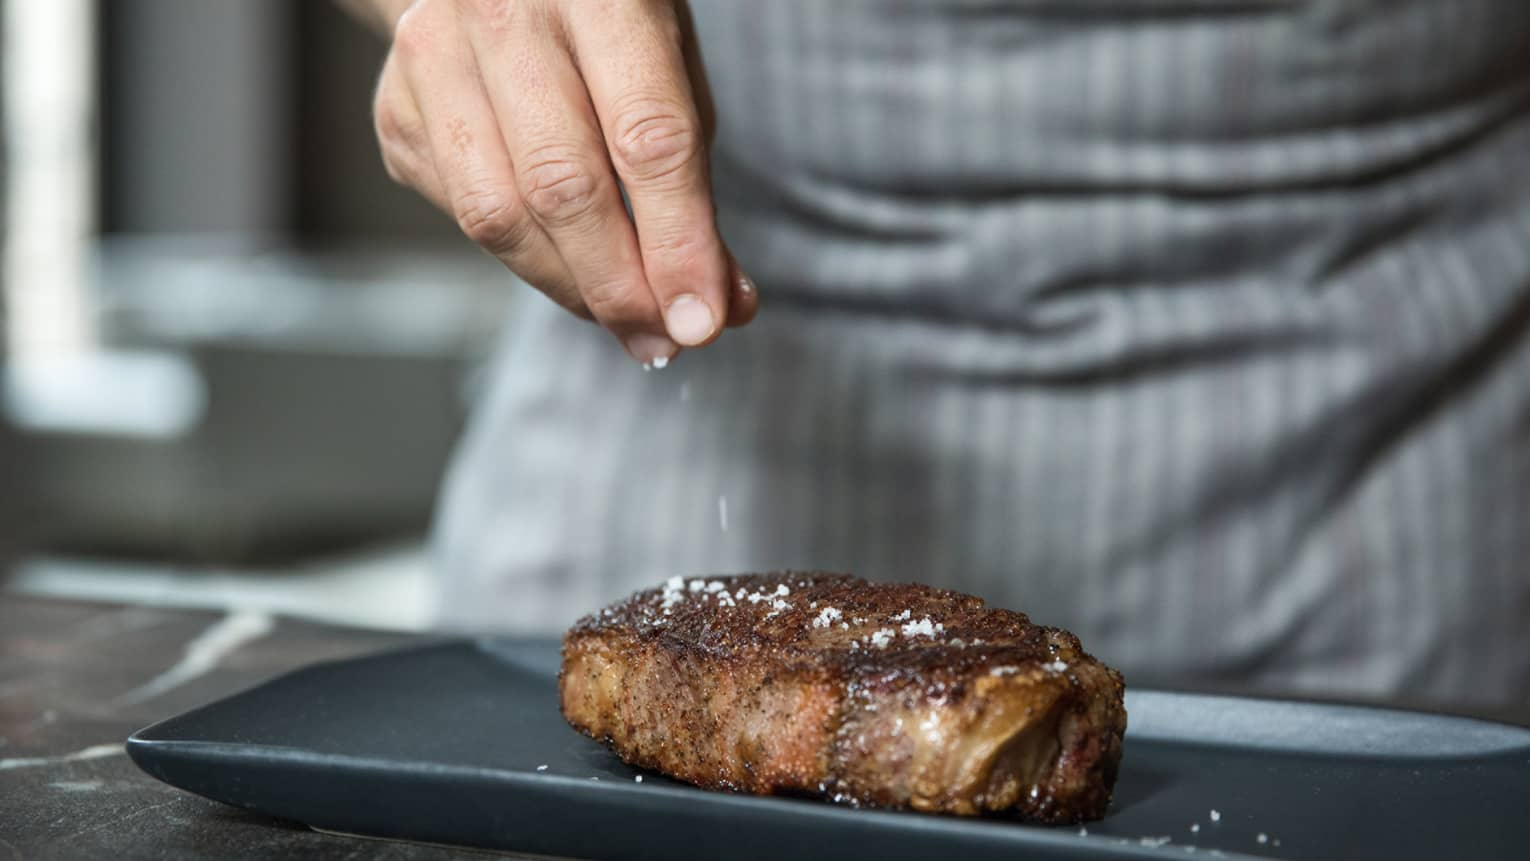 Close-up of chef garnishing salt on thick seared New York steak on black platter